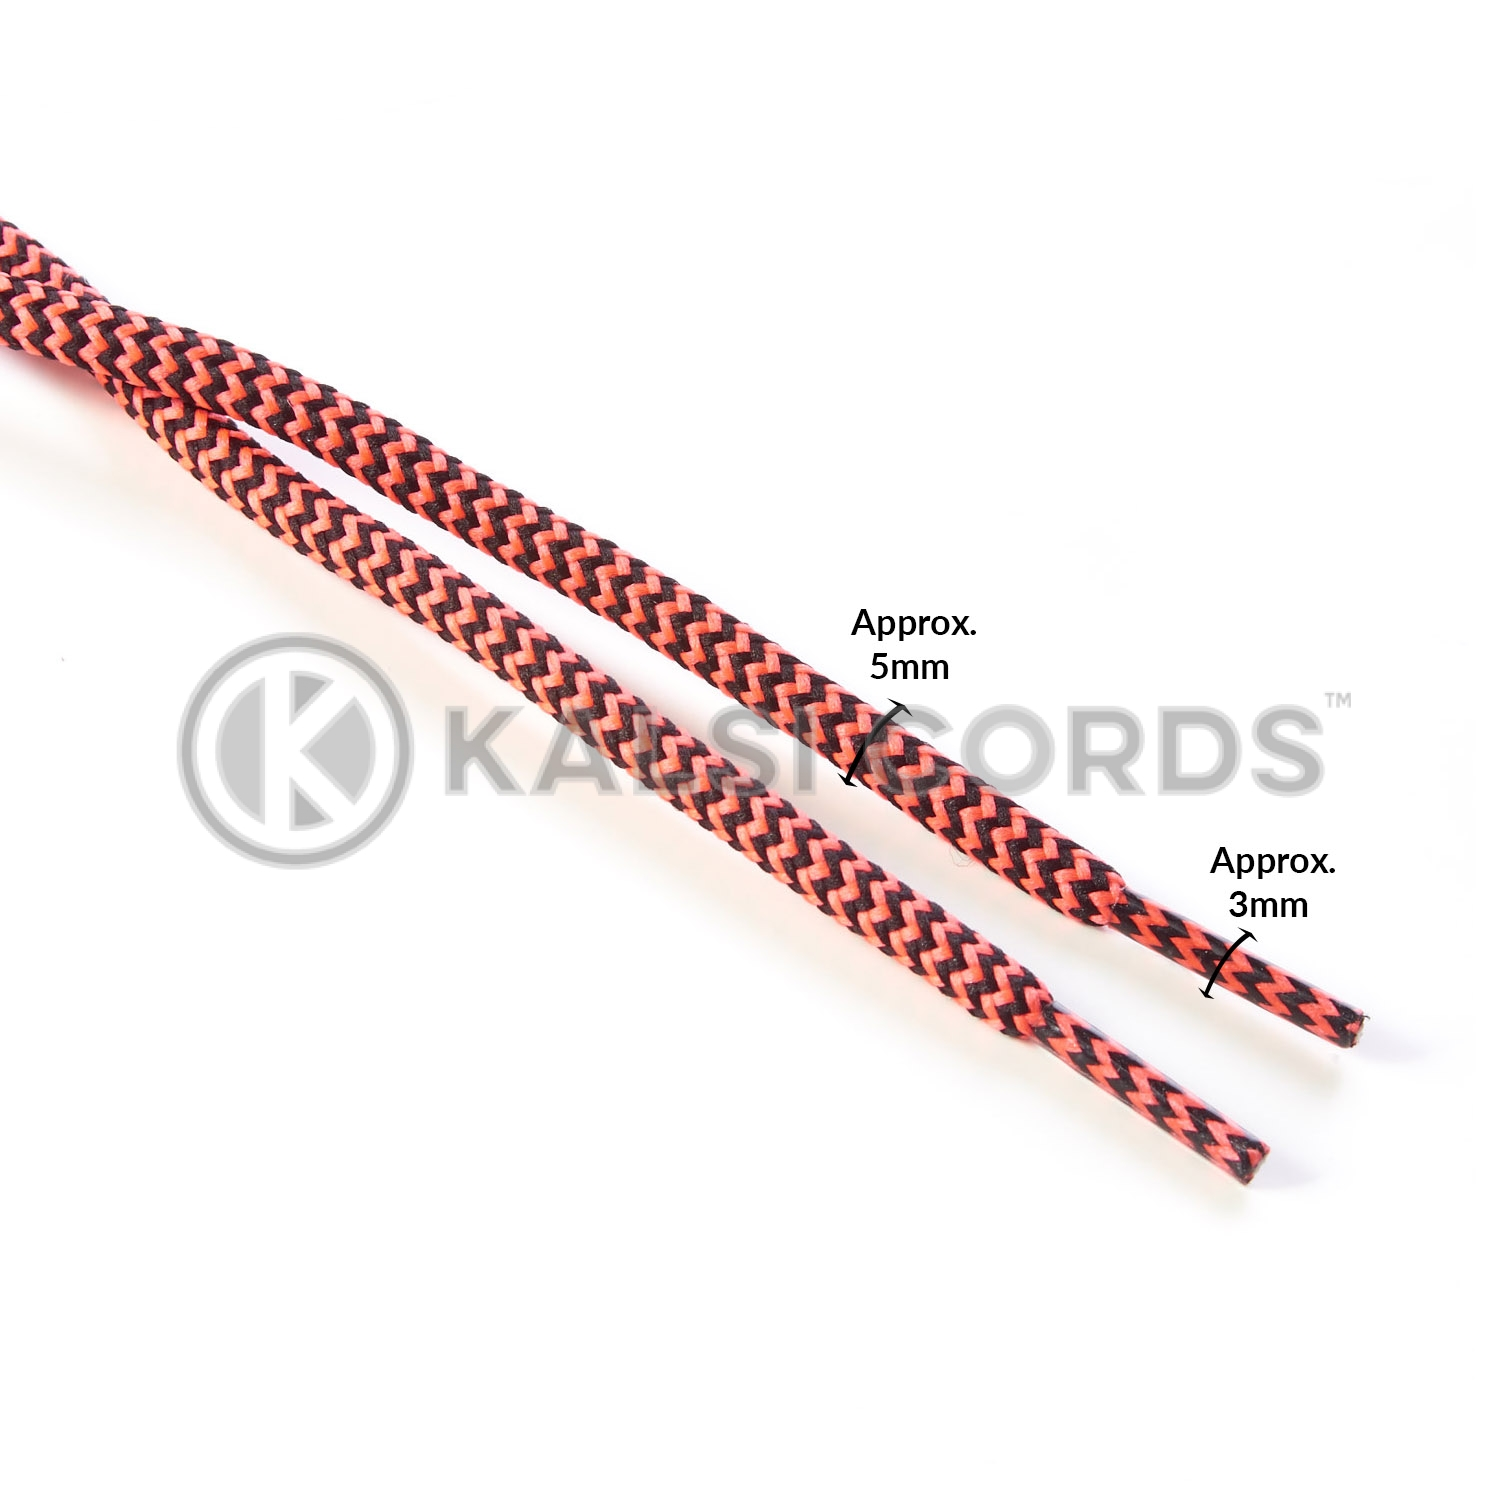 T621 5mm Round Cord Shoe Laces Black Flo Pink Herringbone Pattern Kids Trainers Adults Hiking Walking Boots Kalsi Cords